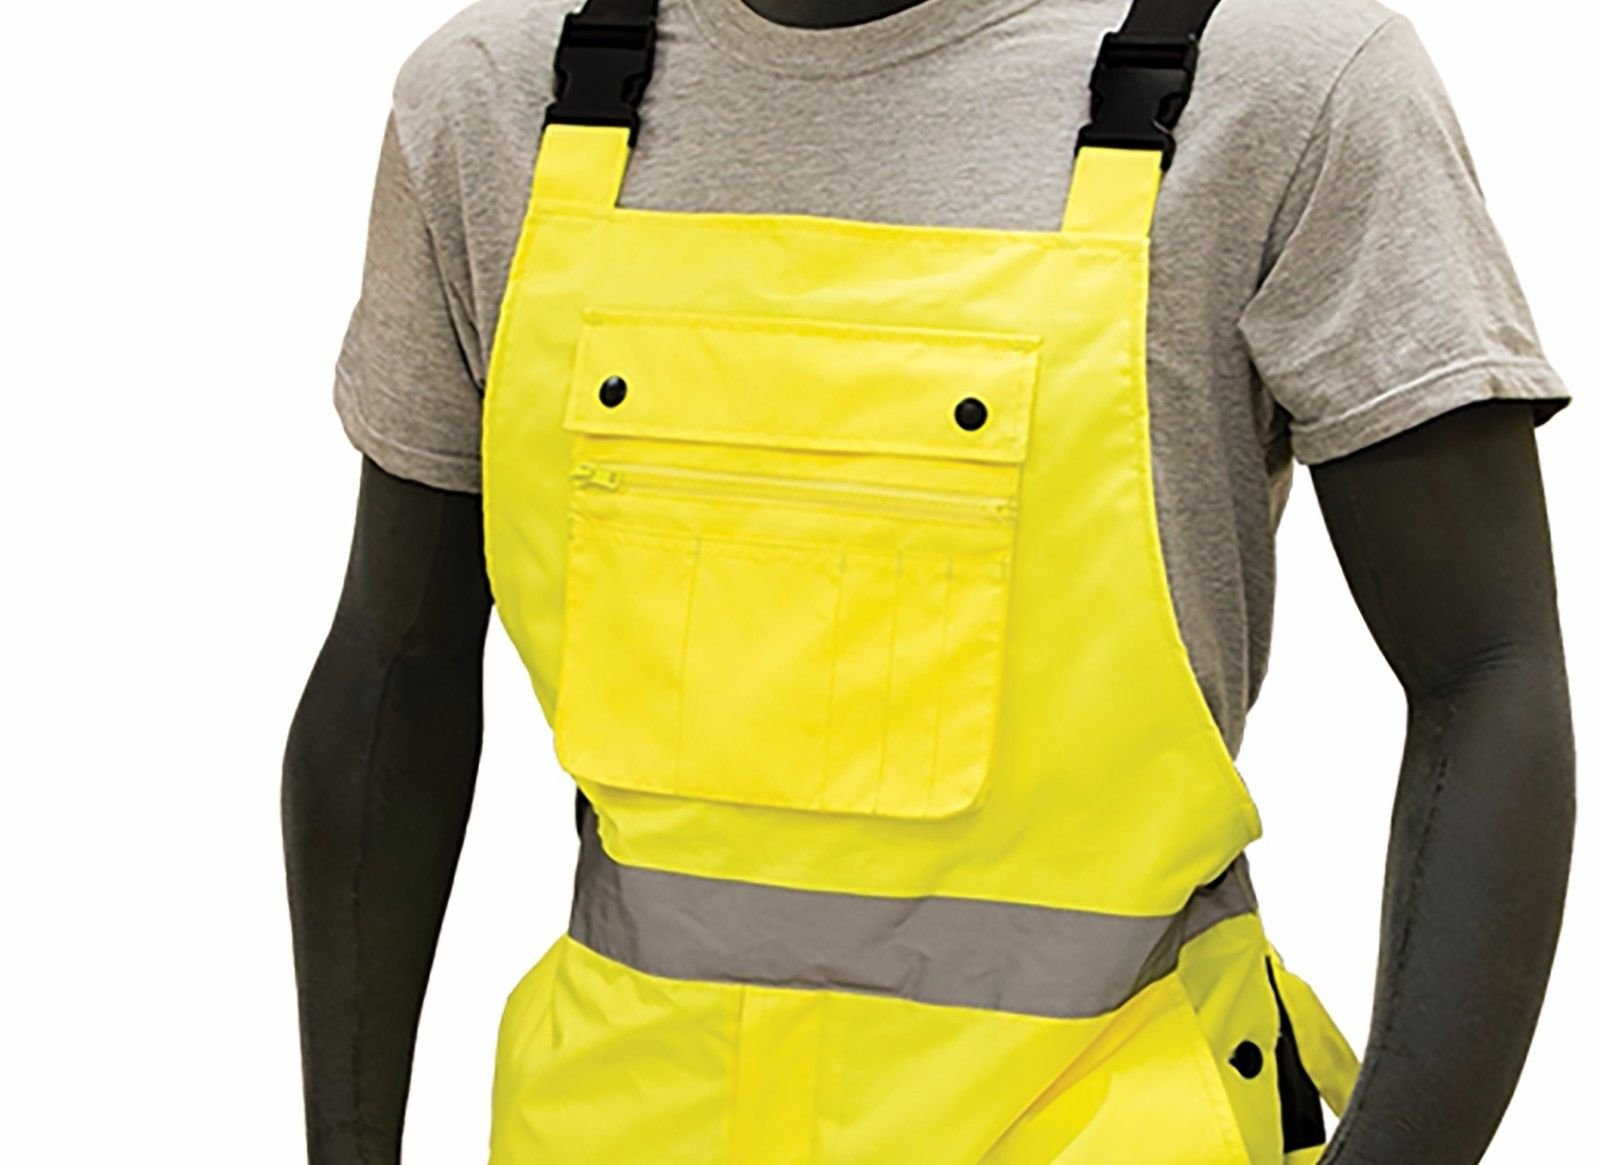 Majestic 75-2357 ANSI Class E Hi-Viz Bib Overalls, Waterproof, Quilted Insulation, Reinforced Nylon Rip-Stop, Zippers at Ankle, 3M Scotchlite, Yellow/Black, Size: XL by Majestic (Image #2)